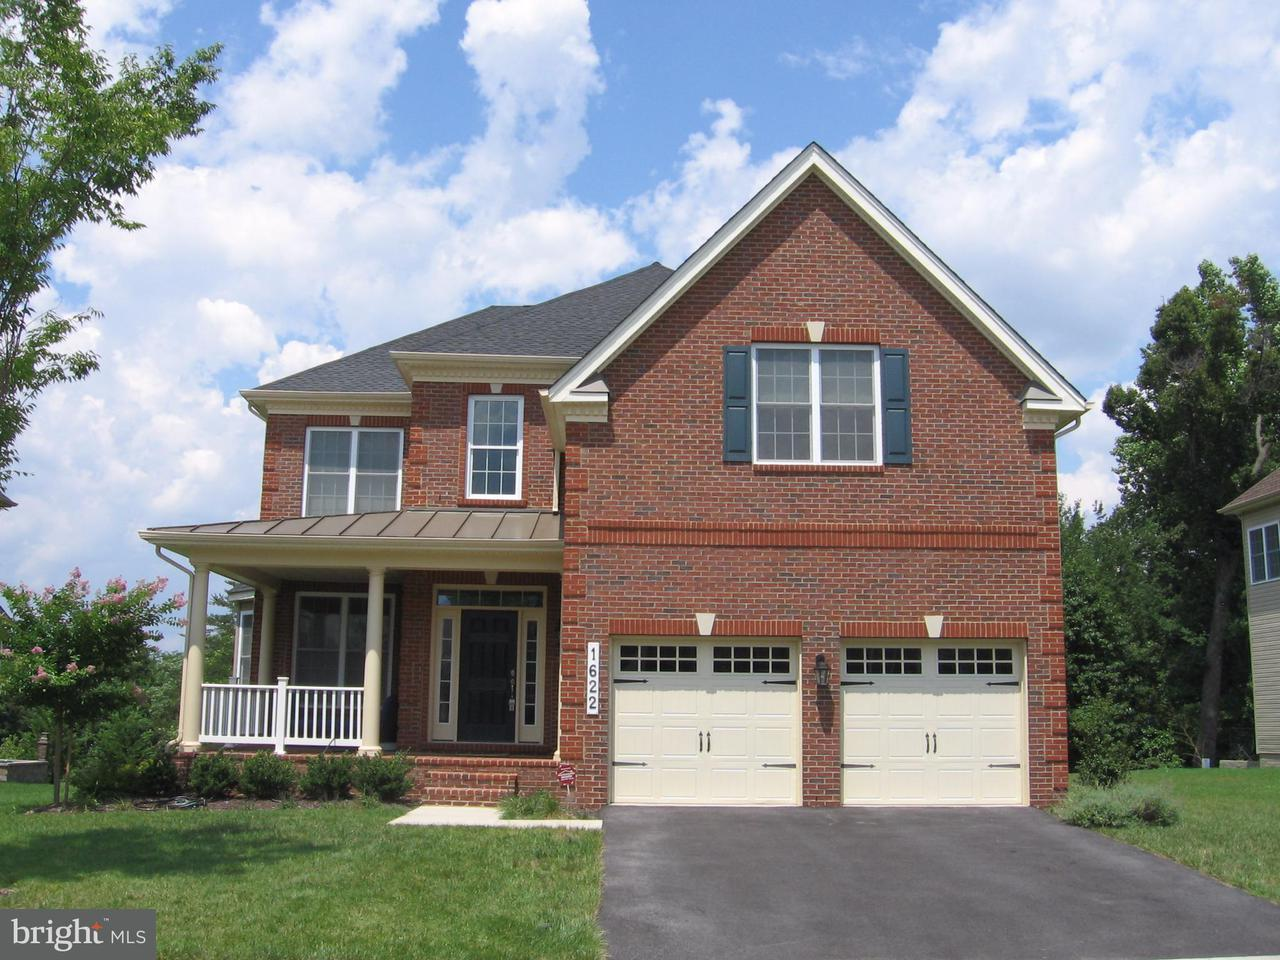 Single Family Home for Sale at 1622 STREAM VALLEY OVERLOOK 1622 STREAM VALLEY OVERLOOK Severn, Maryland 21144 United States